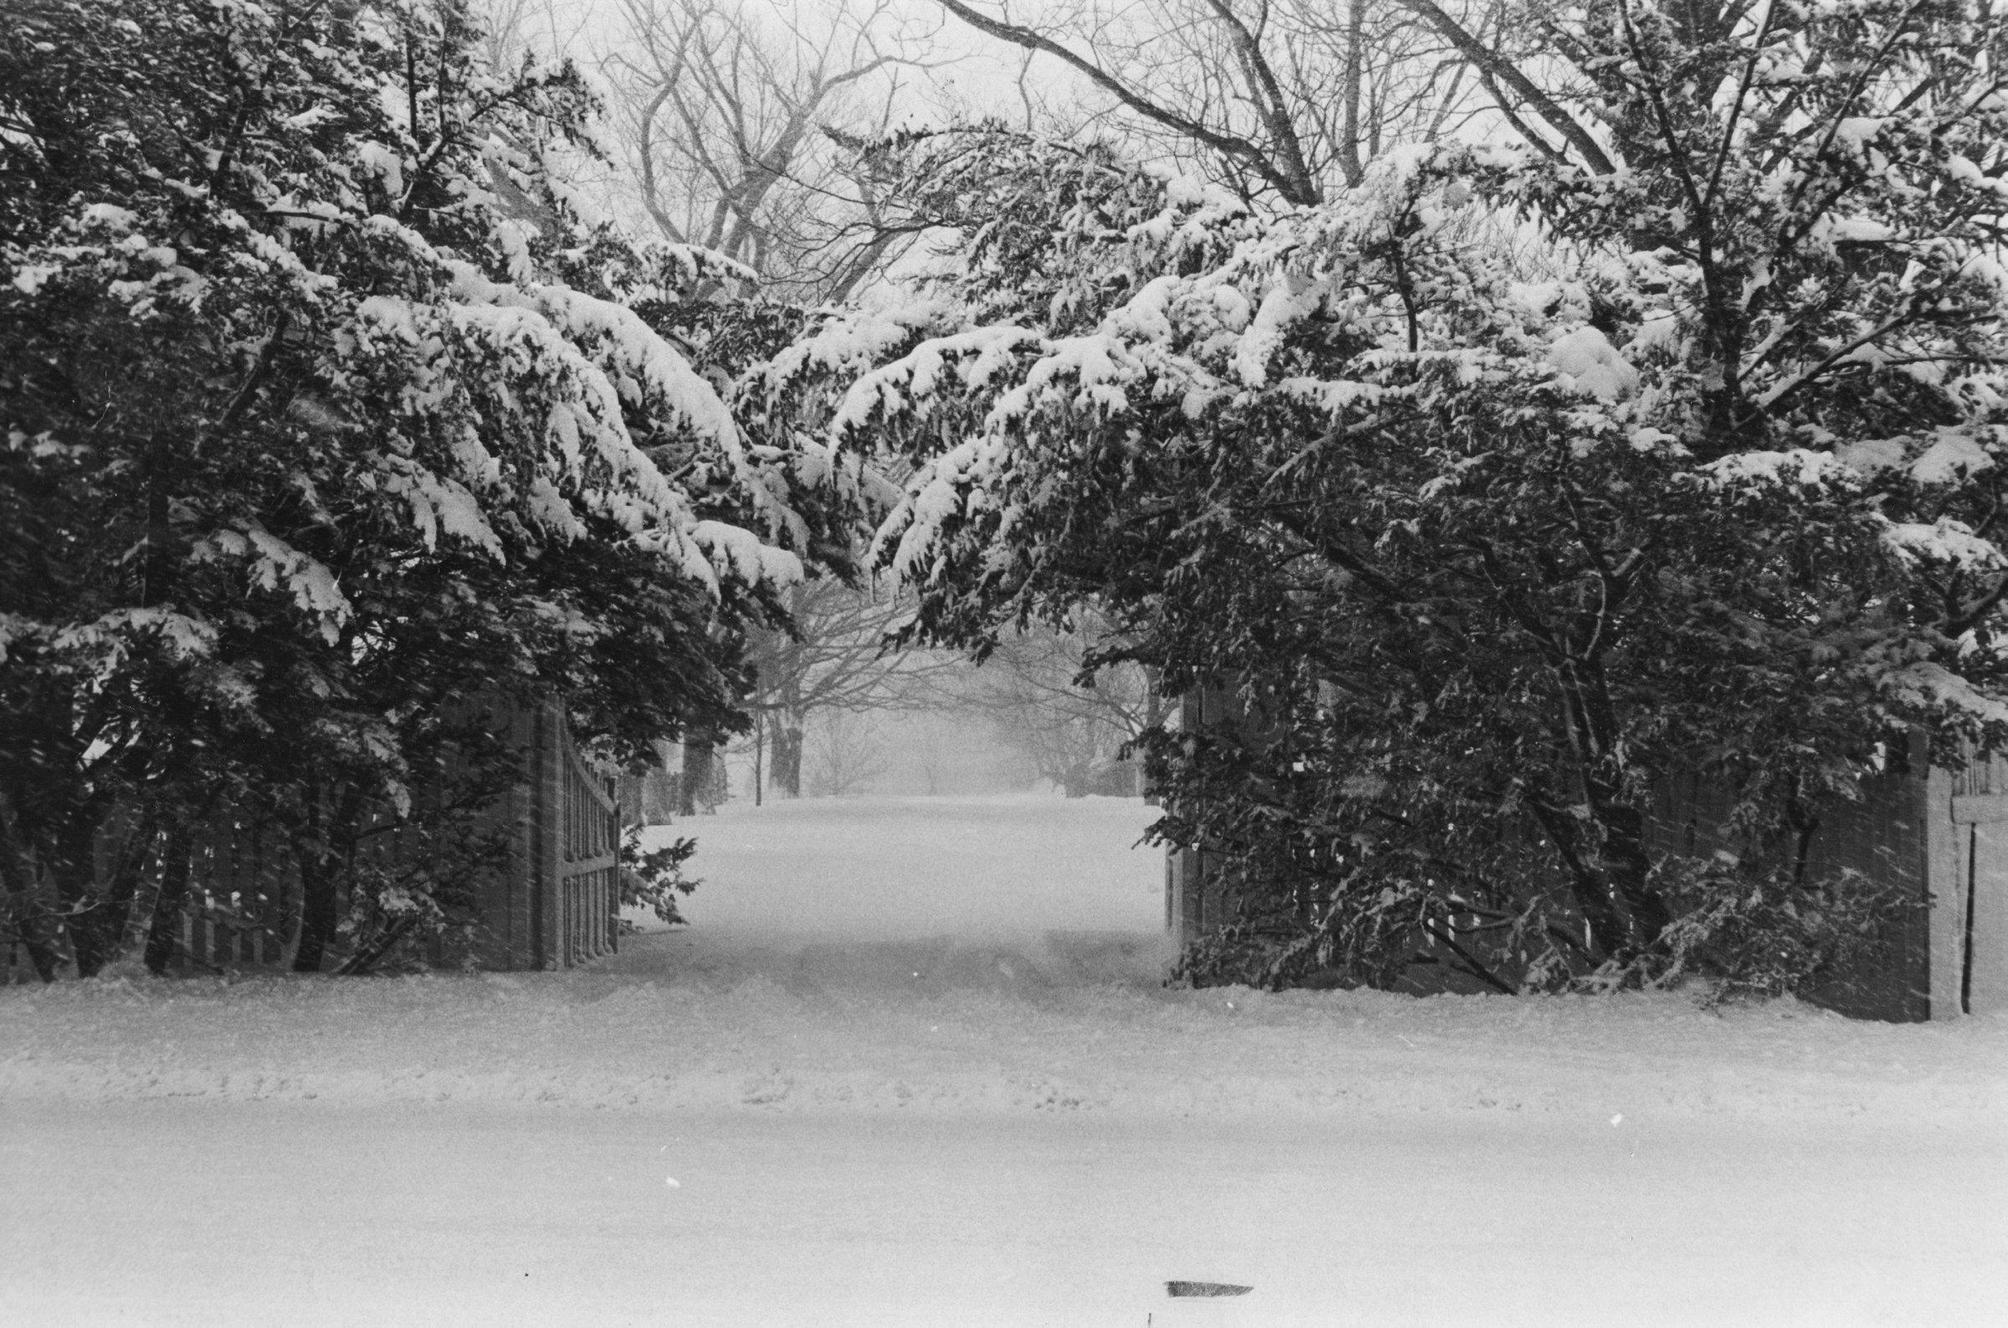 The snowiest March was in 1967, with 23.3 inches